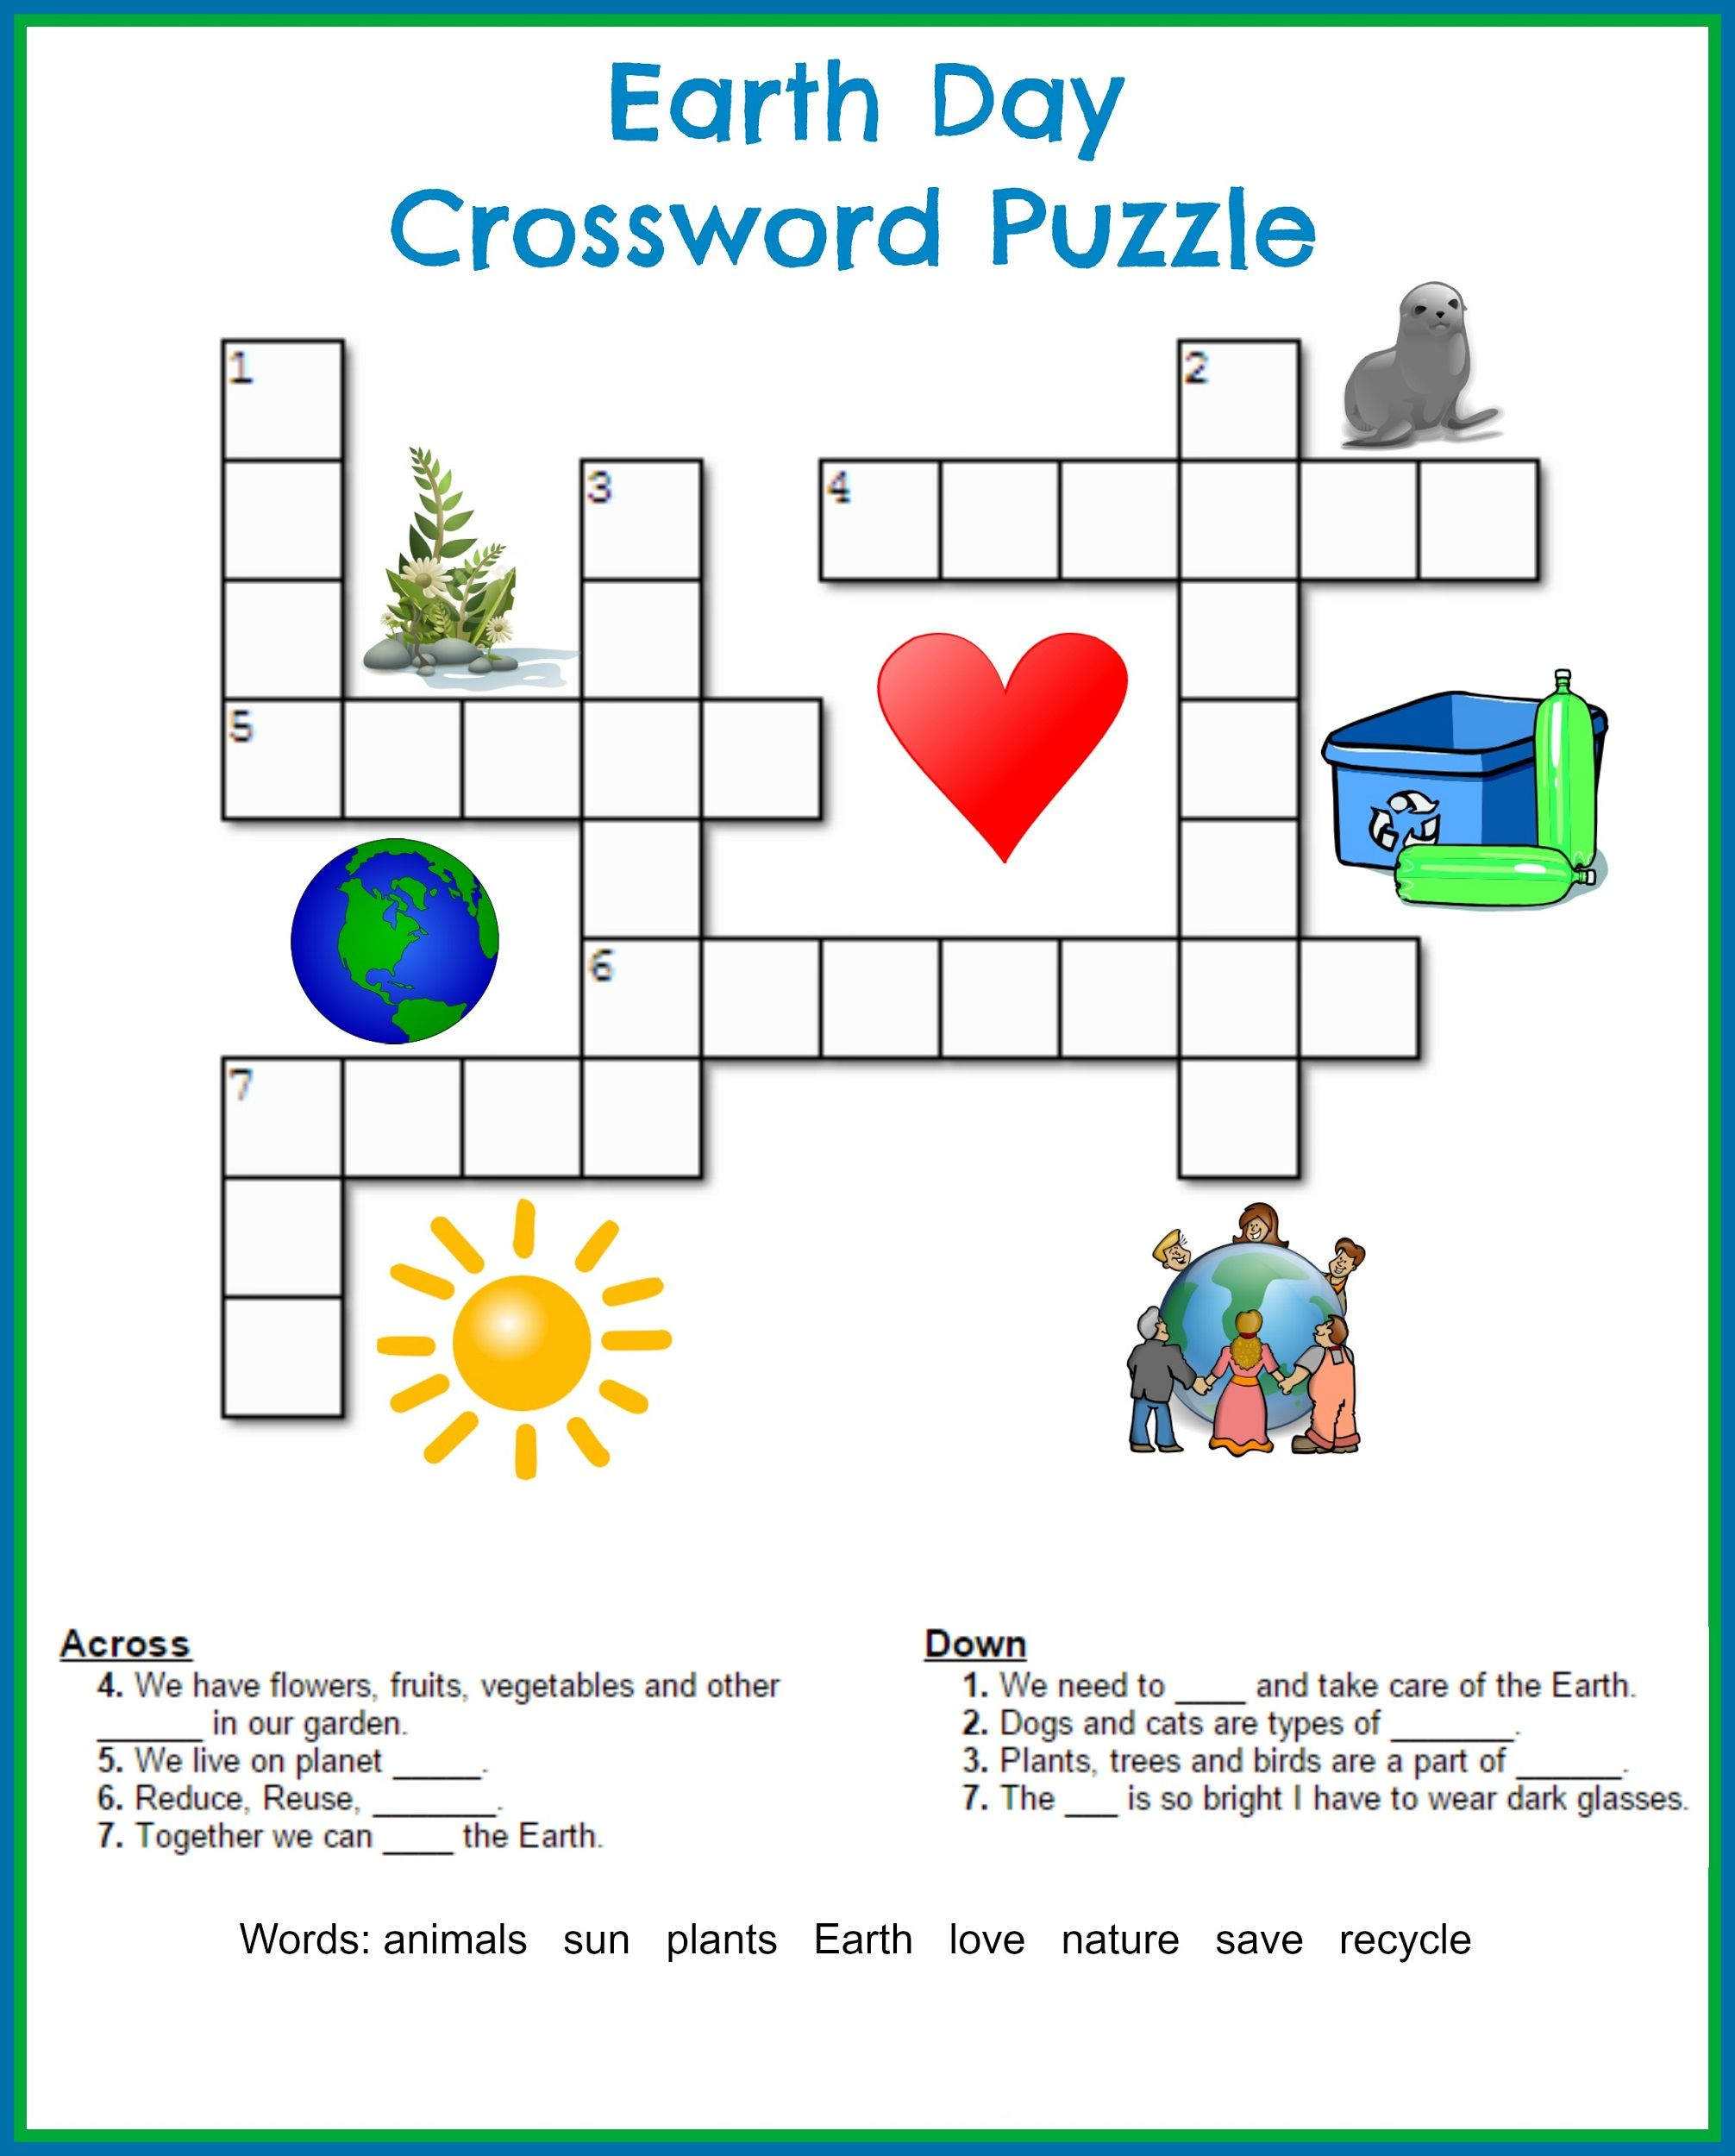 Crossword Puzzles For Kids - Best Coloring Pages For Kids - Printable Word Puzzles For 6 Year Olds